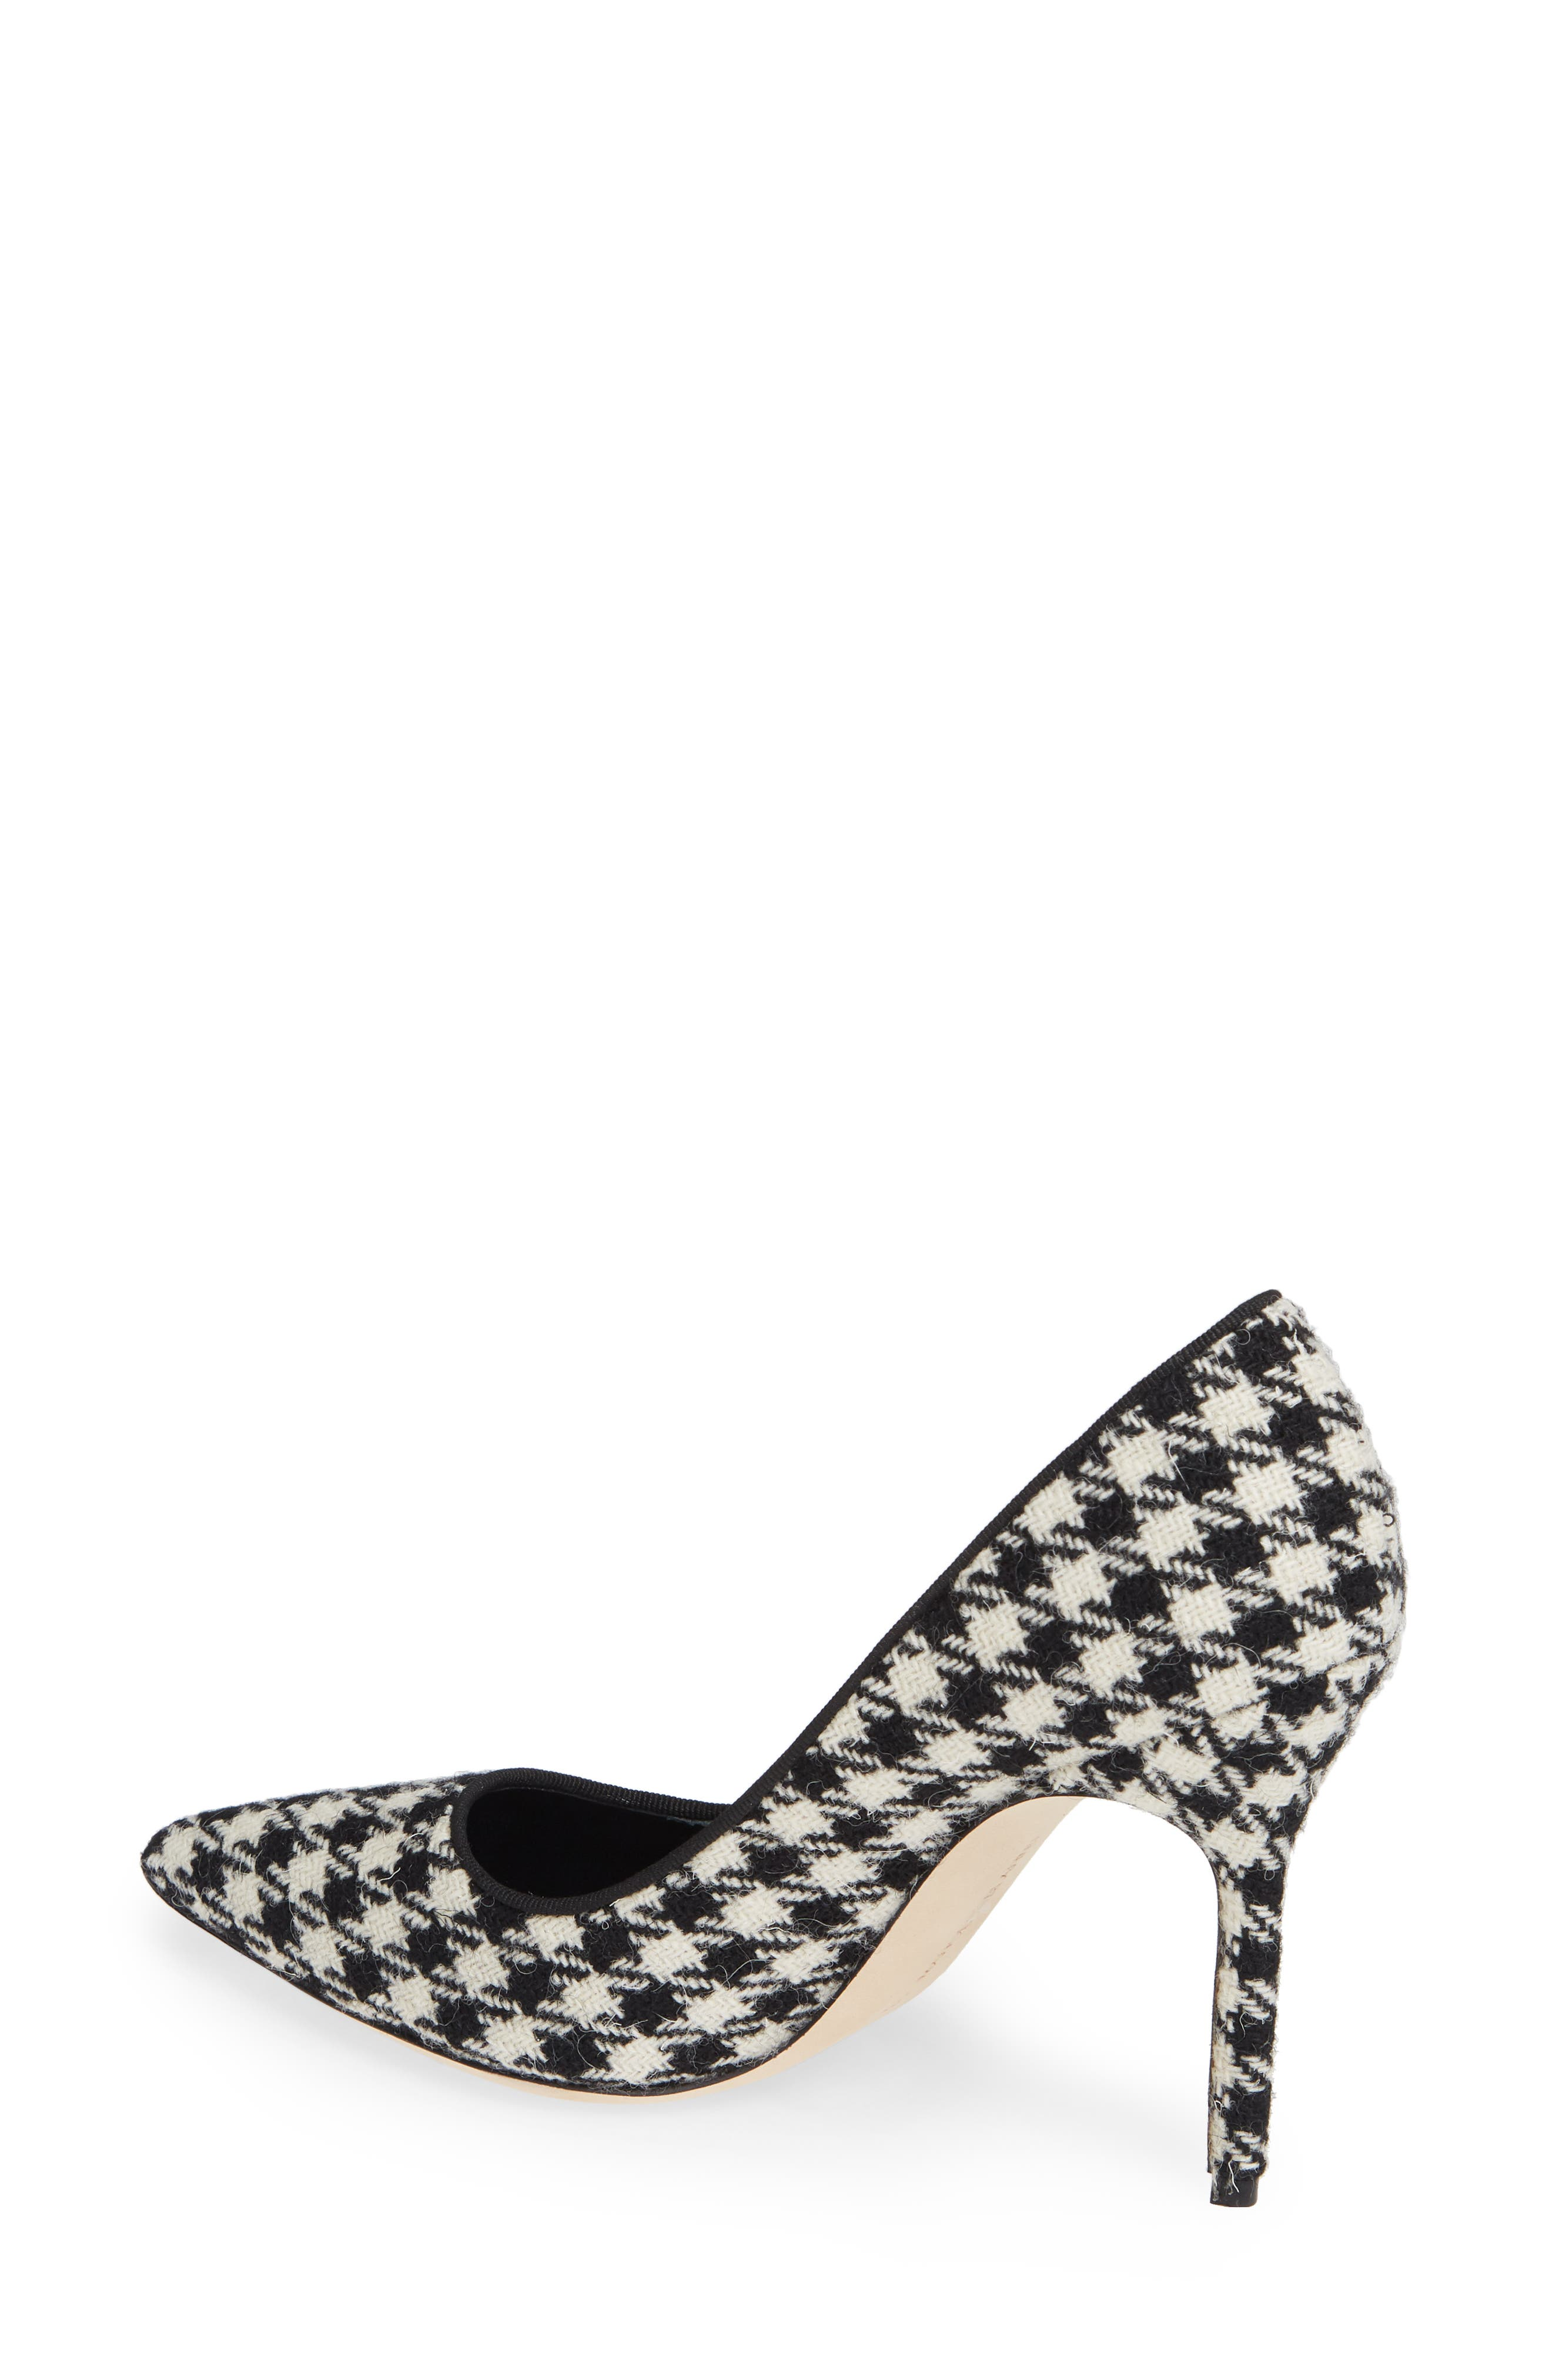 BB Pointy Toe Pump,                             Alternate thumbnail 2, color,                             HOUNDSTOOTH